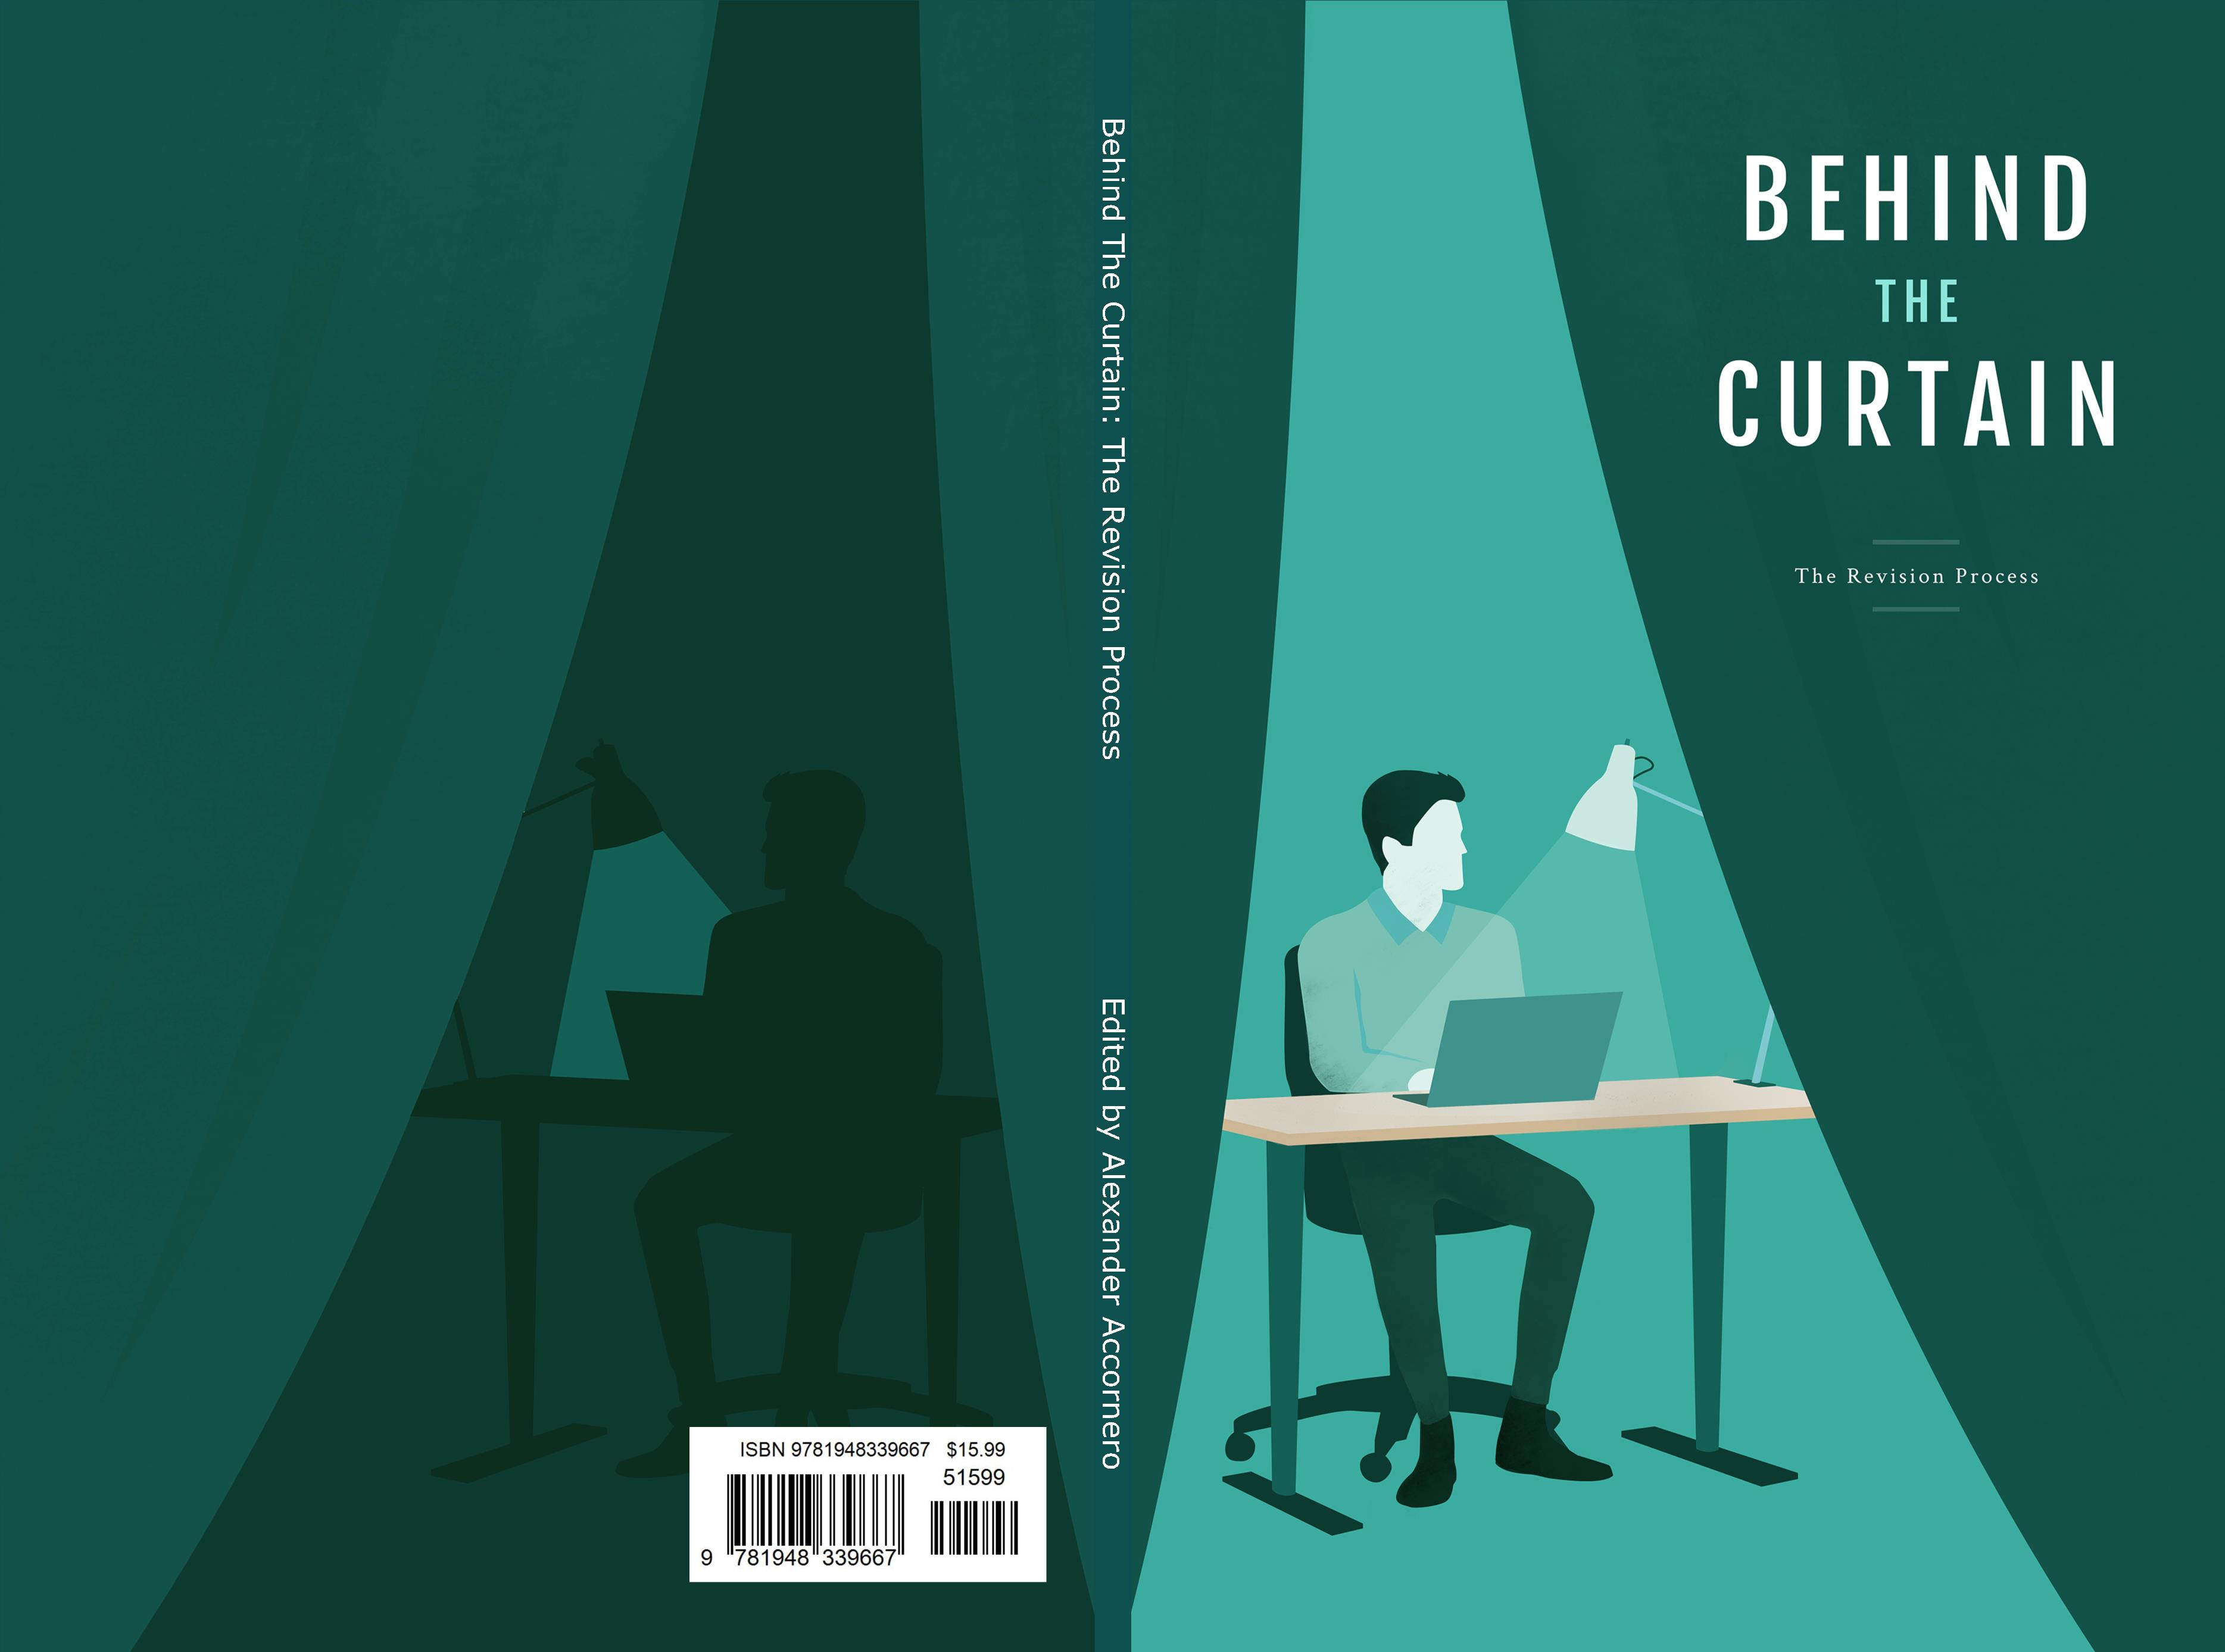 Behind The Curtain The Revision Process by Alexander Accornero